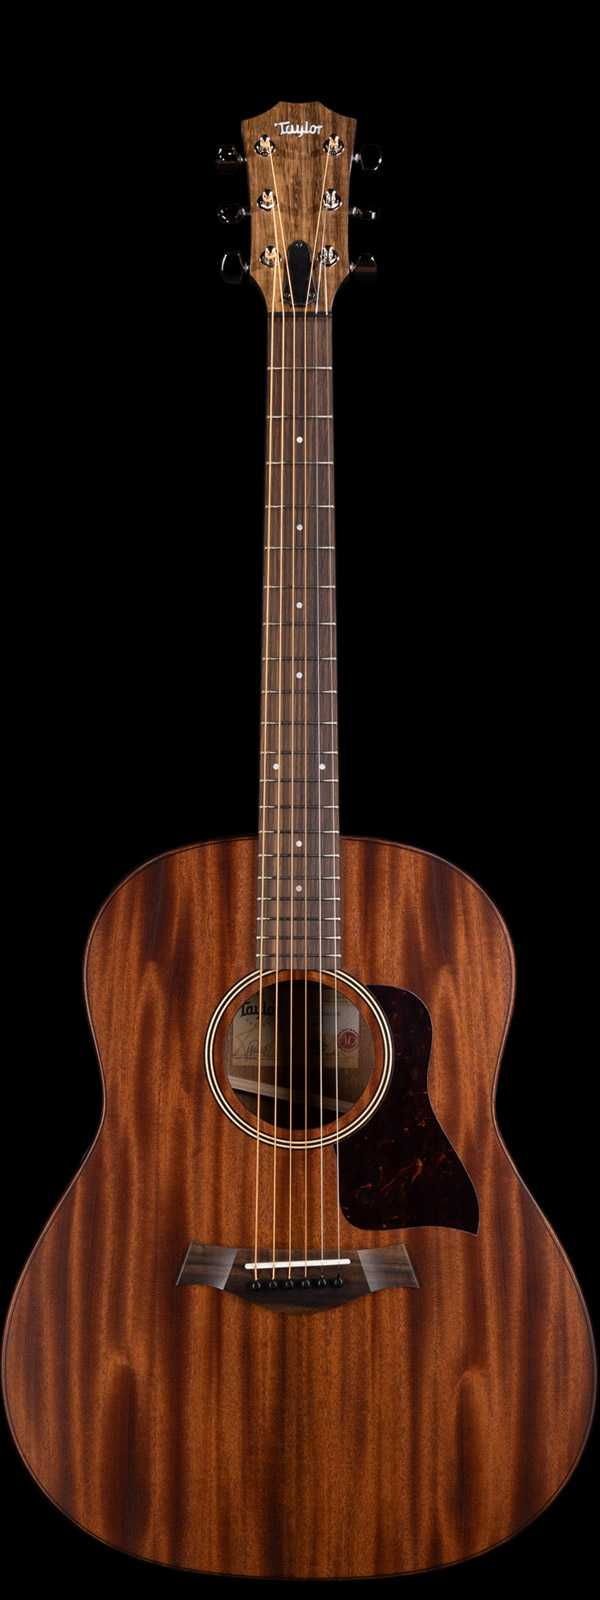 Taylor AD27 American Dream Grand Pacific Acoustic Satin Finish